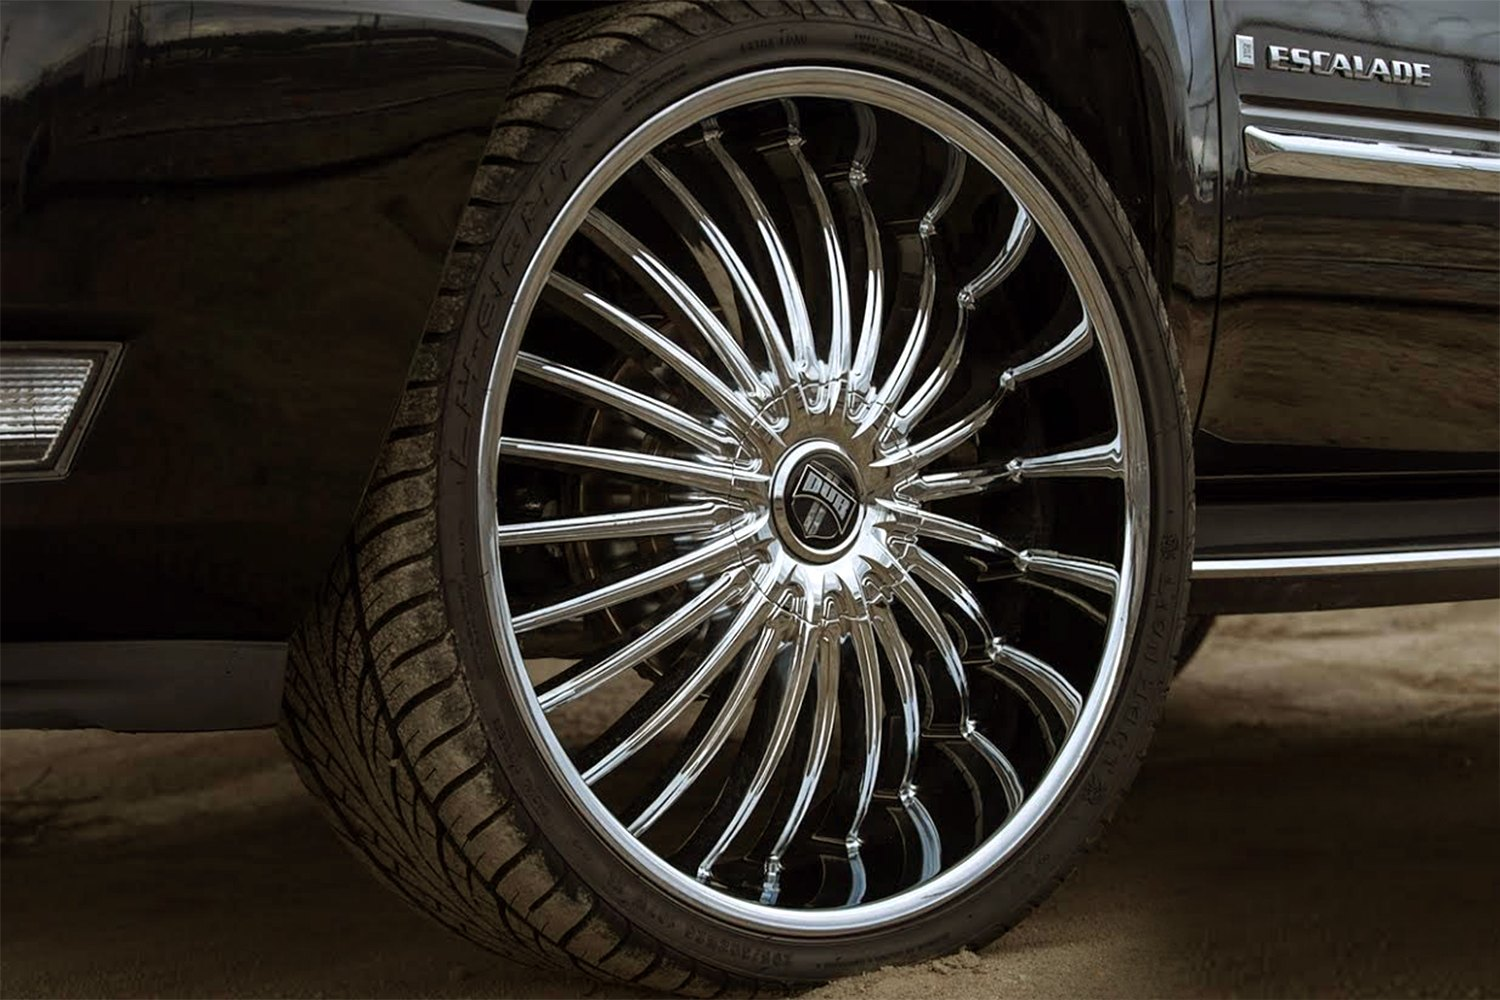 Cadillac Eldorado in addition C Shot Calla Tahoe Med as well Mag together with Cadillac Touring Car American Cars For Sale X besides Cadillac Eldorado Coupe For Sale. on 1996 cadillac escalade